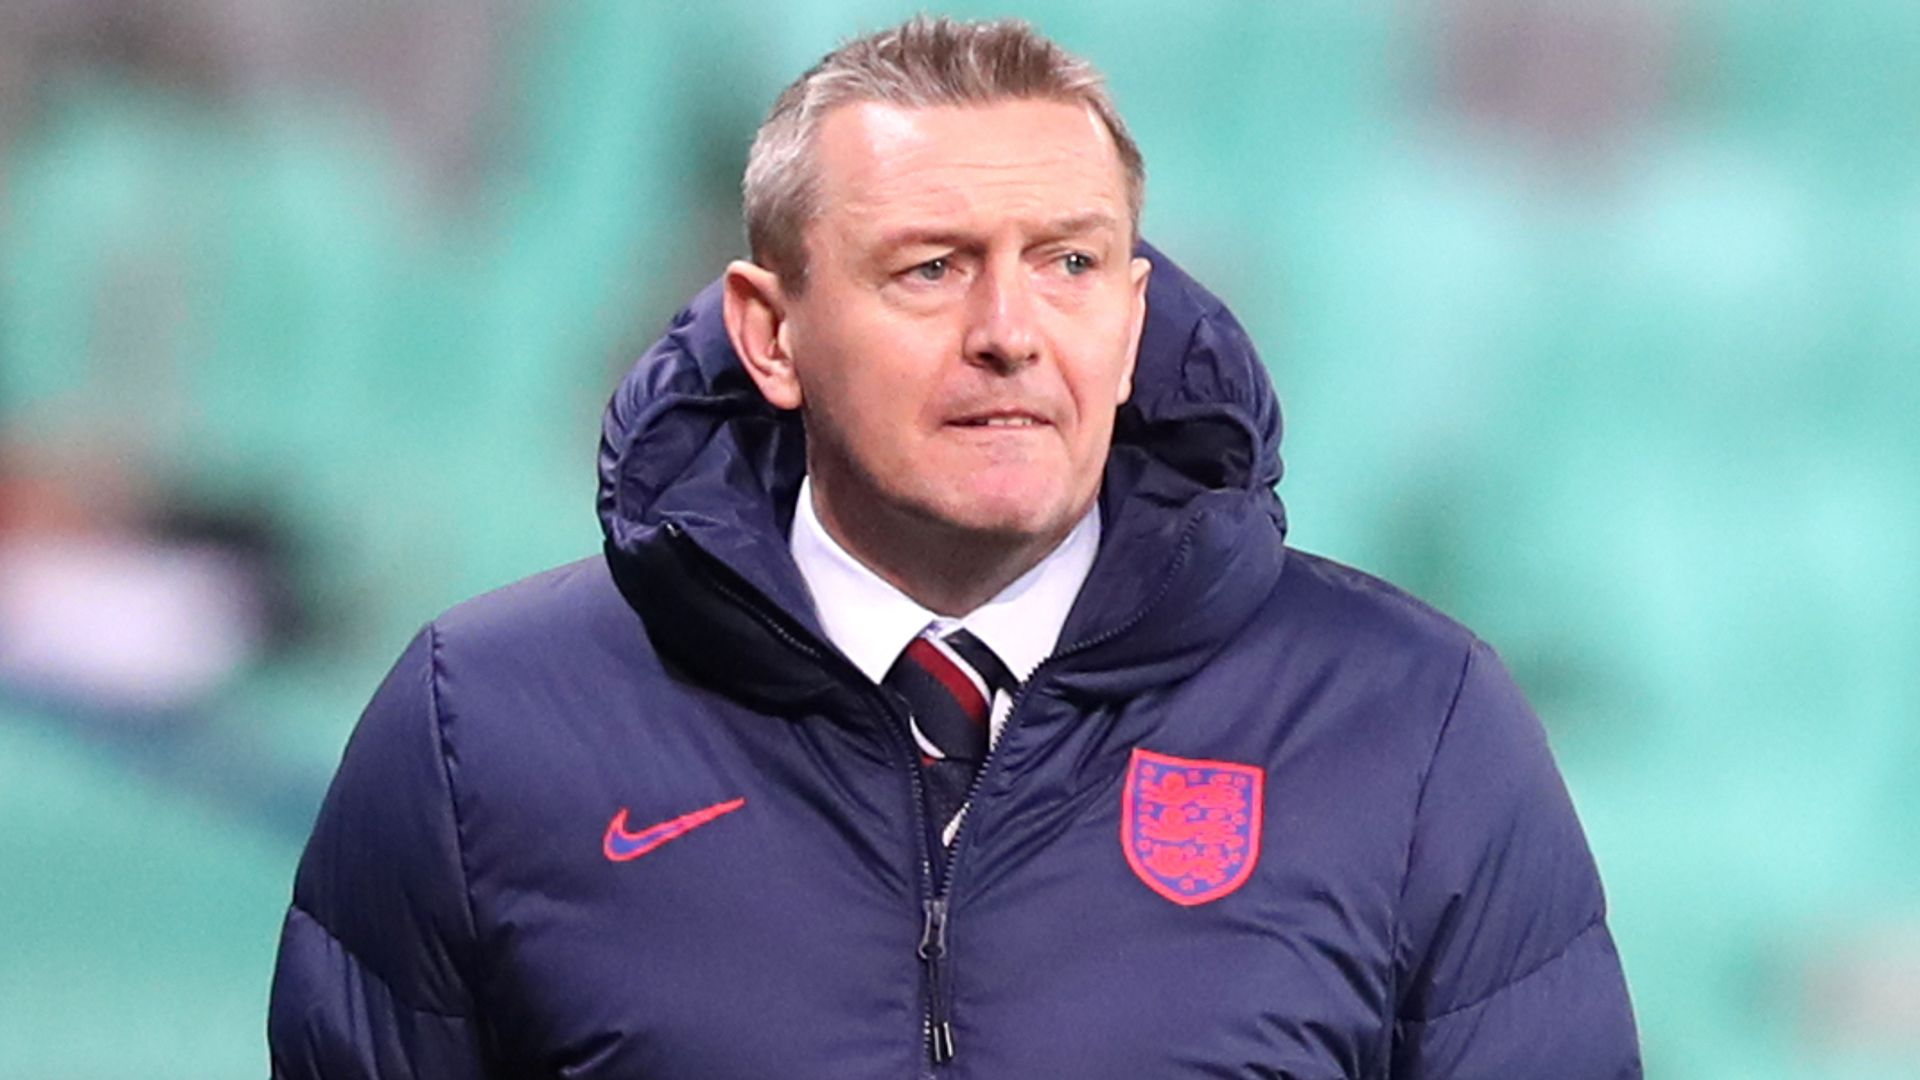 Boothroyd to leave England U21s role